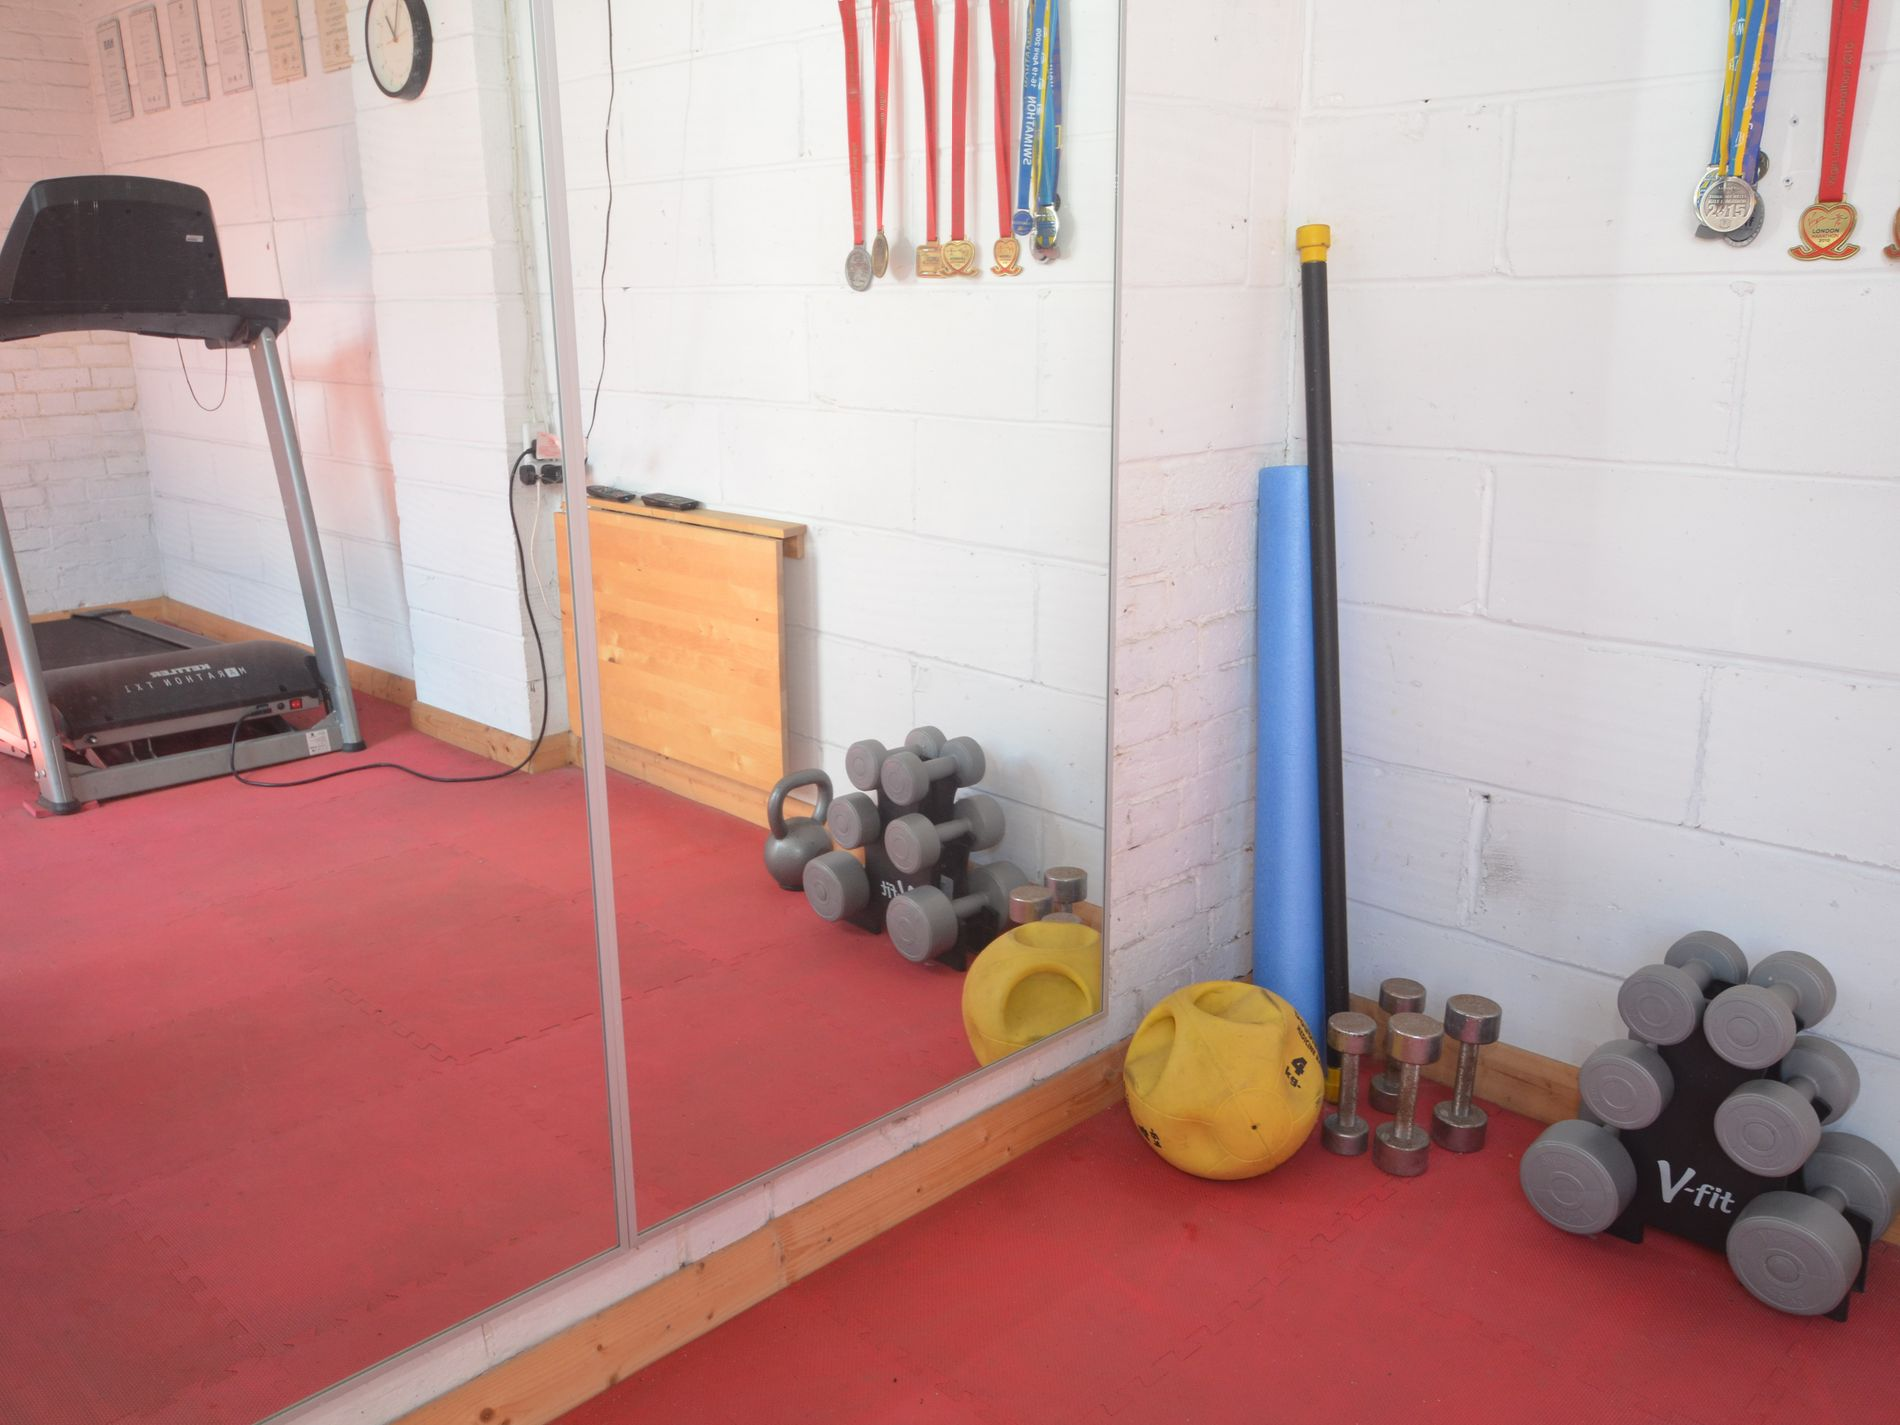 Use of the gym equipment